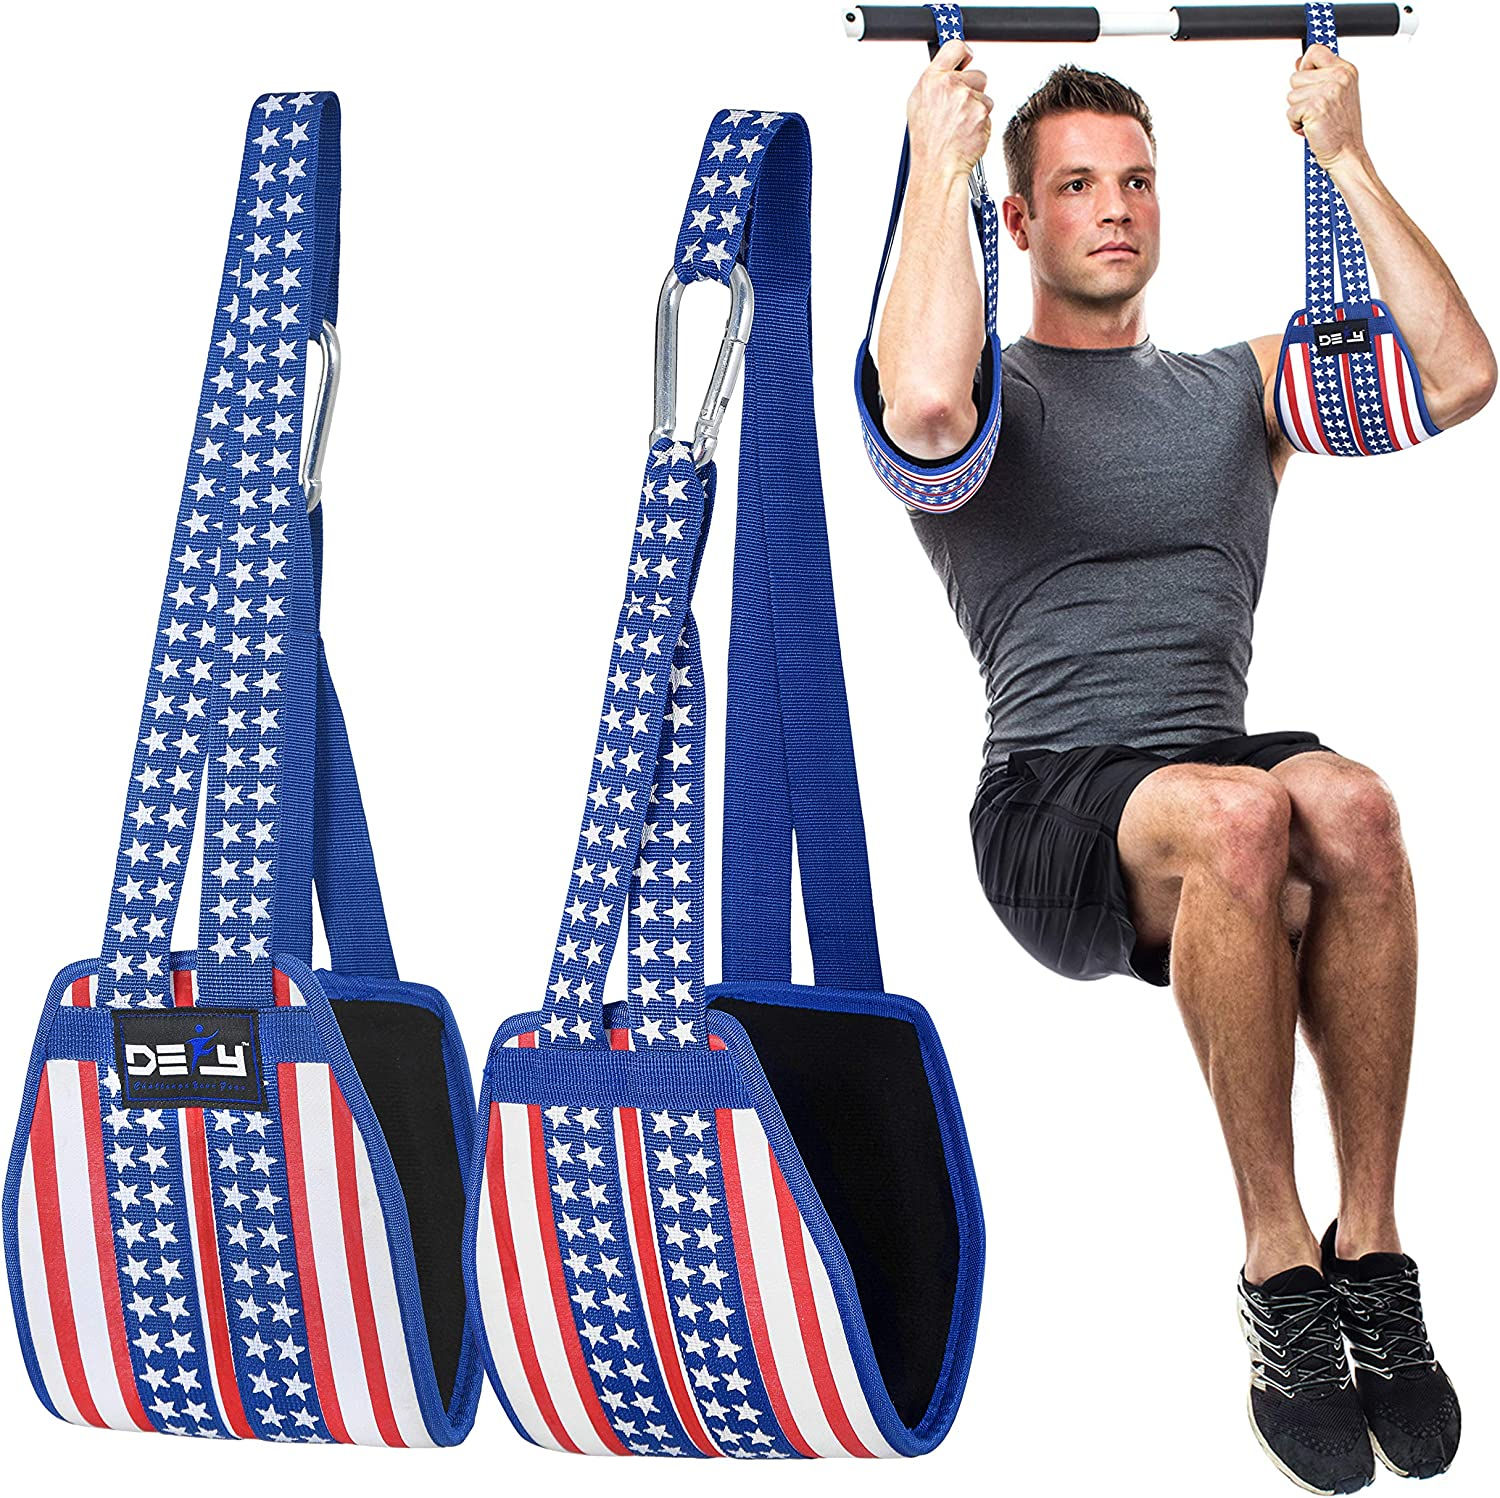 DEFY Hanging Ab Straps for Abdominal Slings Pullup Bar Muscle Building and Core Strength Training Home Gym Fitness Padded Ab Workout Equipment for Men & Women